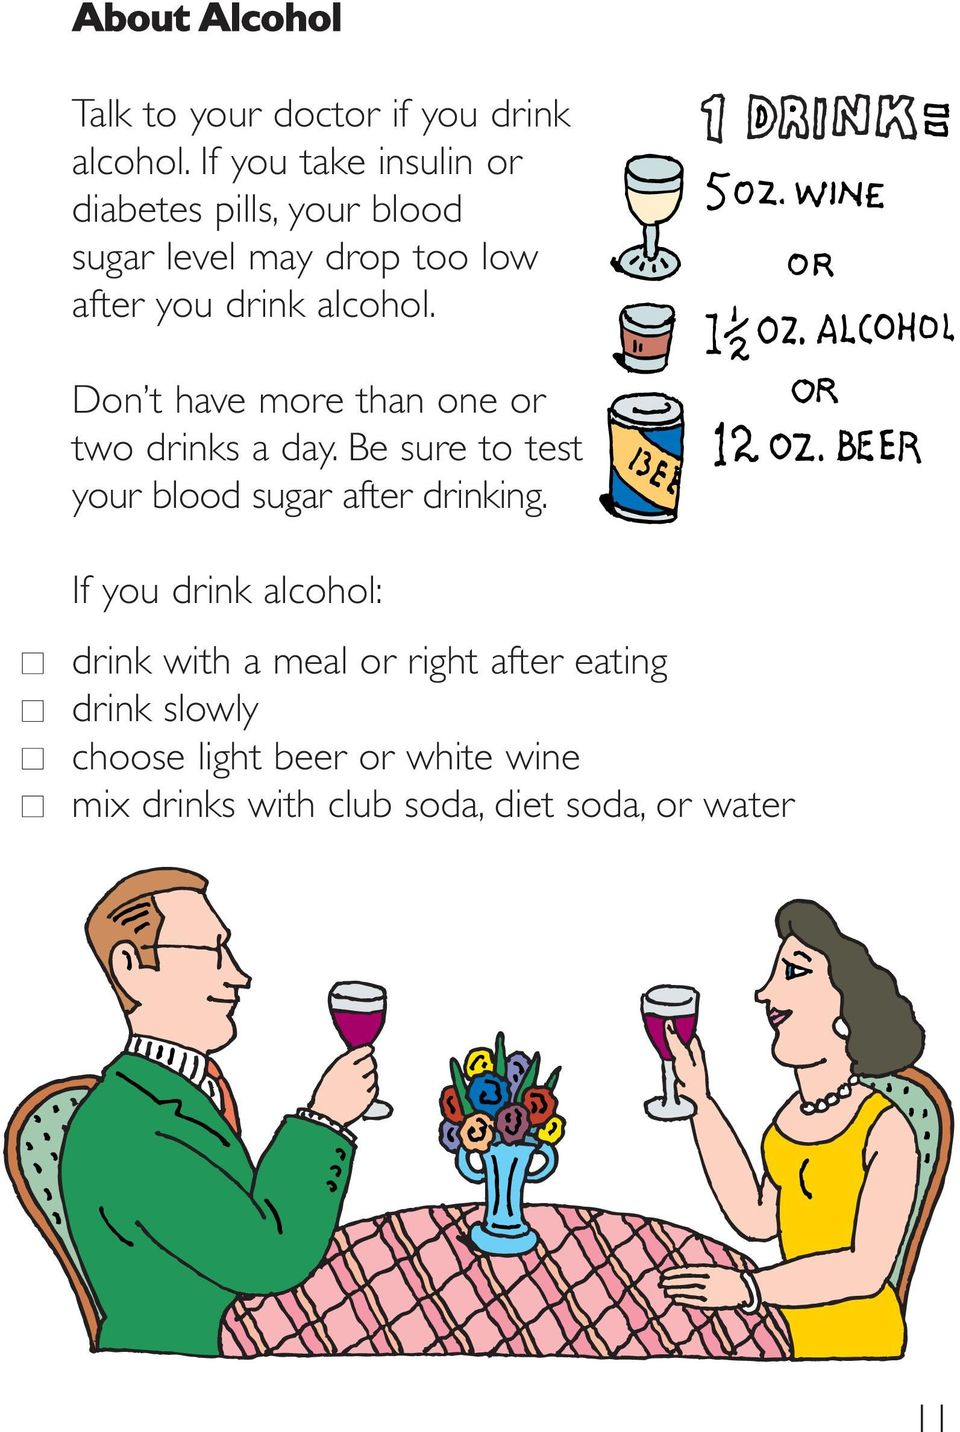 Don t have more than one or two drinks a day. Be sure to test your blood sugar after drinking.